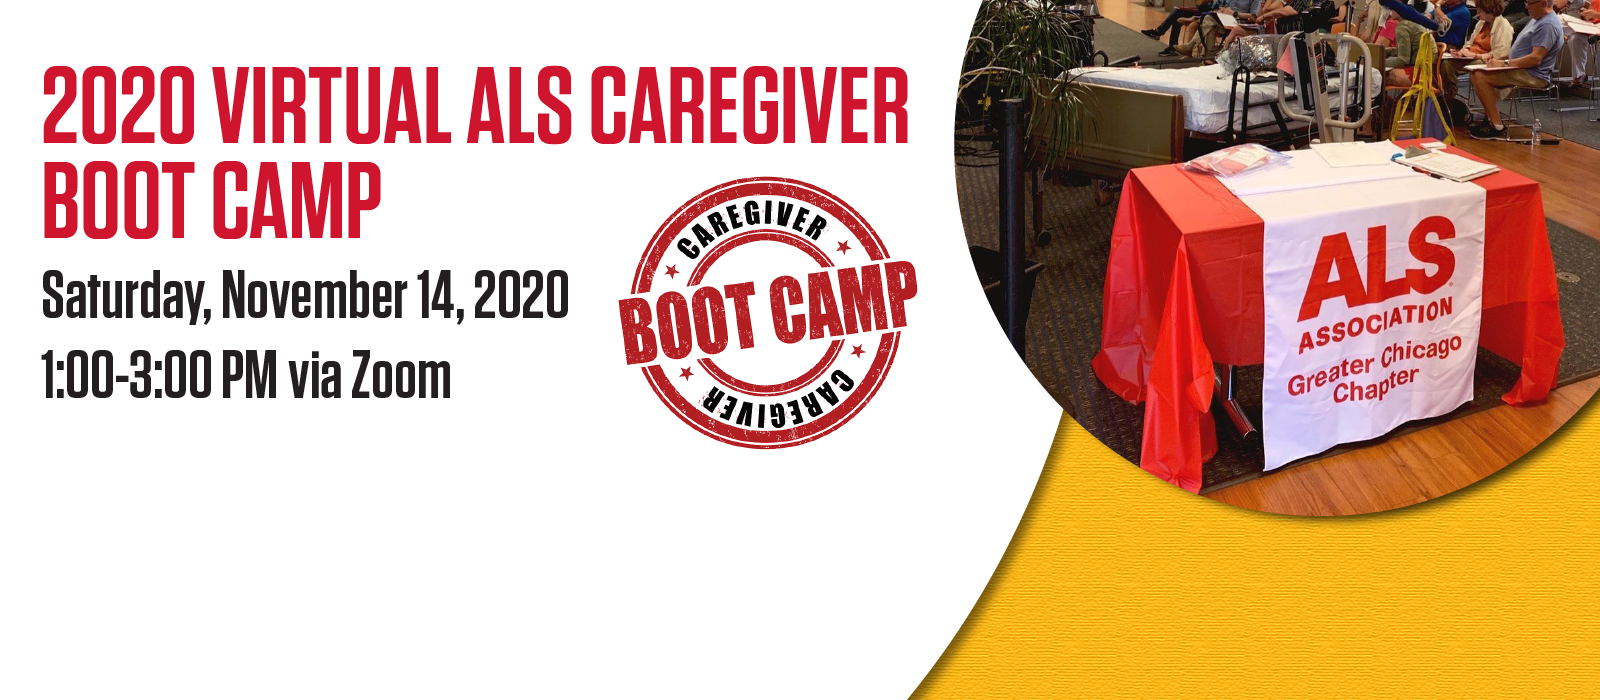 Introducing a Virtual ALS Caregiver Boot Camp Experience